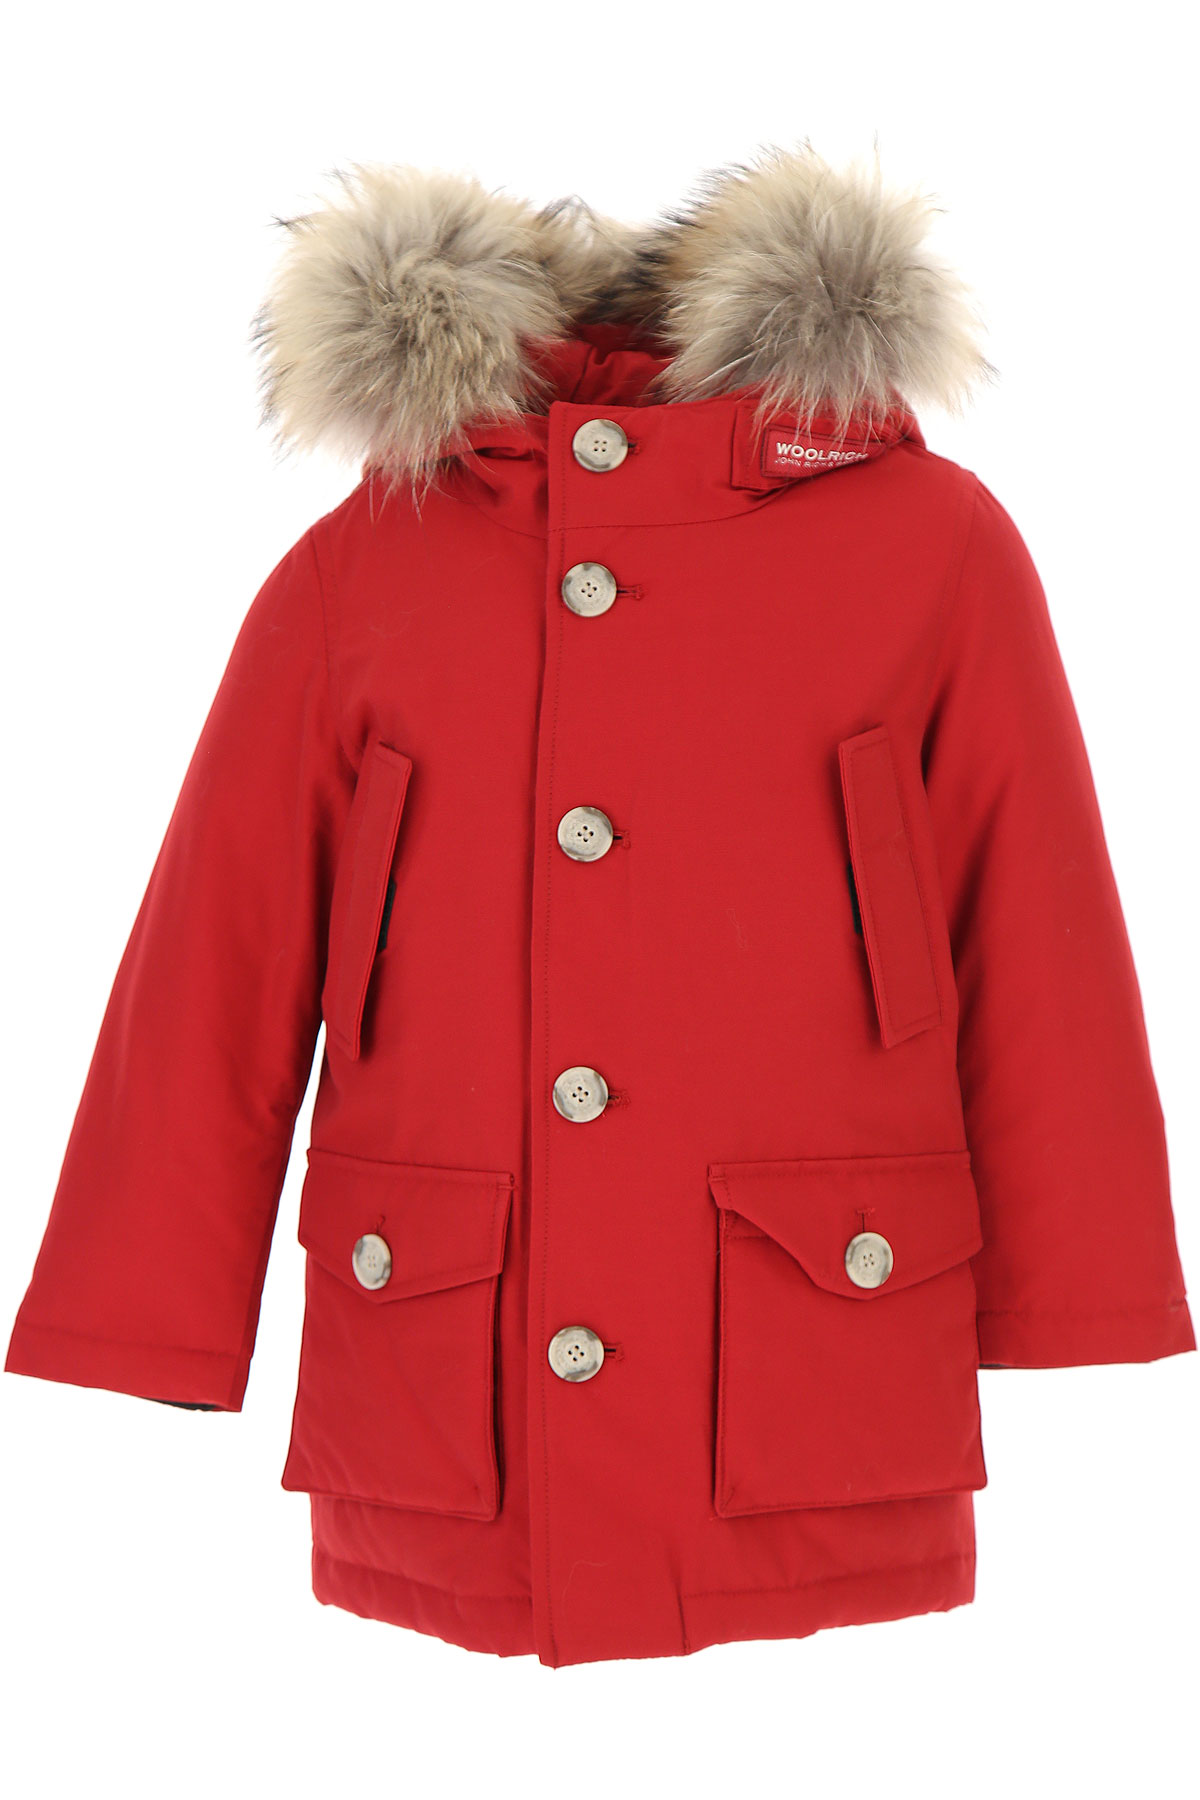 Image of Woolrich Boys Down Jacket for Kids, Puffer Ski Jacket, Red, Cotton, 2017, 10Y 14Y 16Y 16Y 2Y 4Y 6Y 8Y